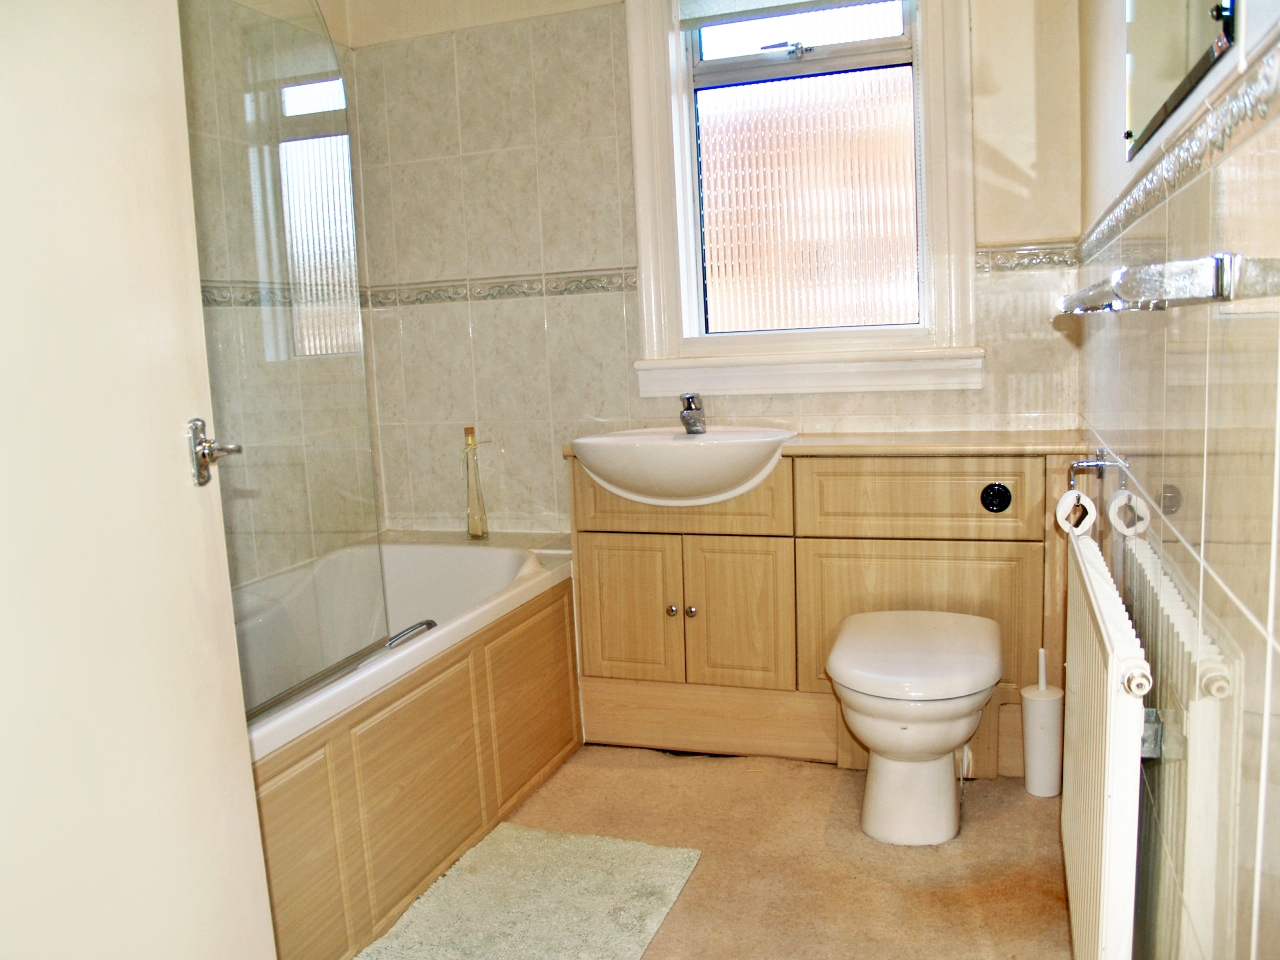 4 bedroom semi detached house SSTC in Solihull - photograph 11.